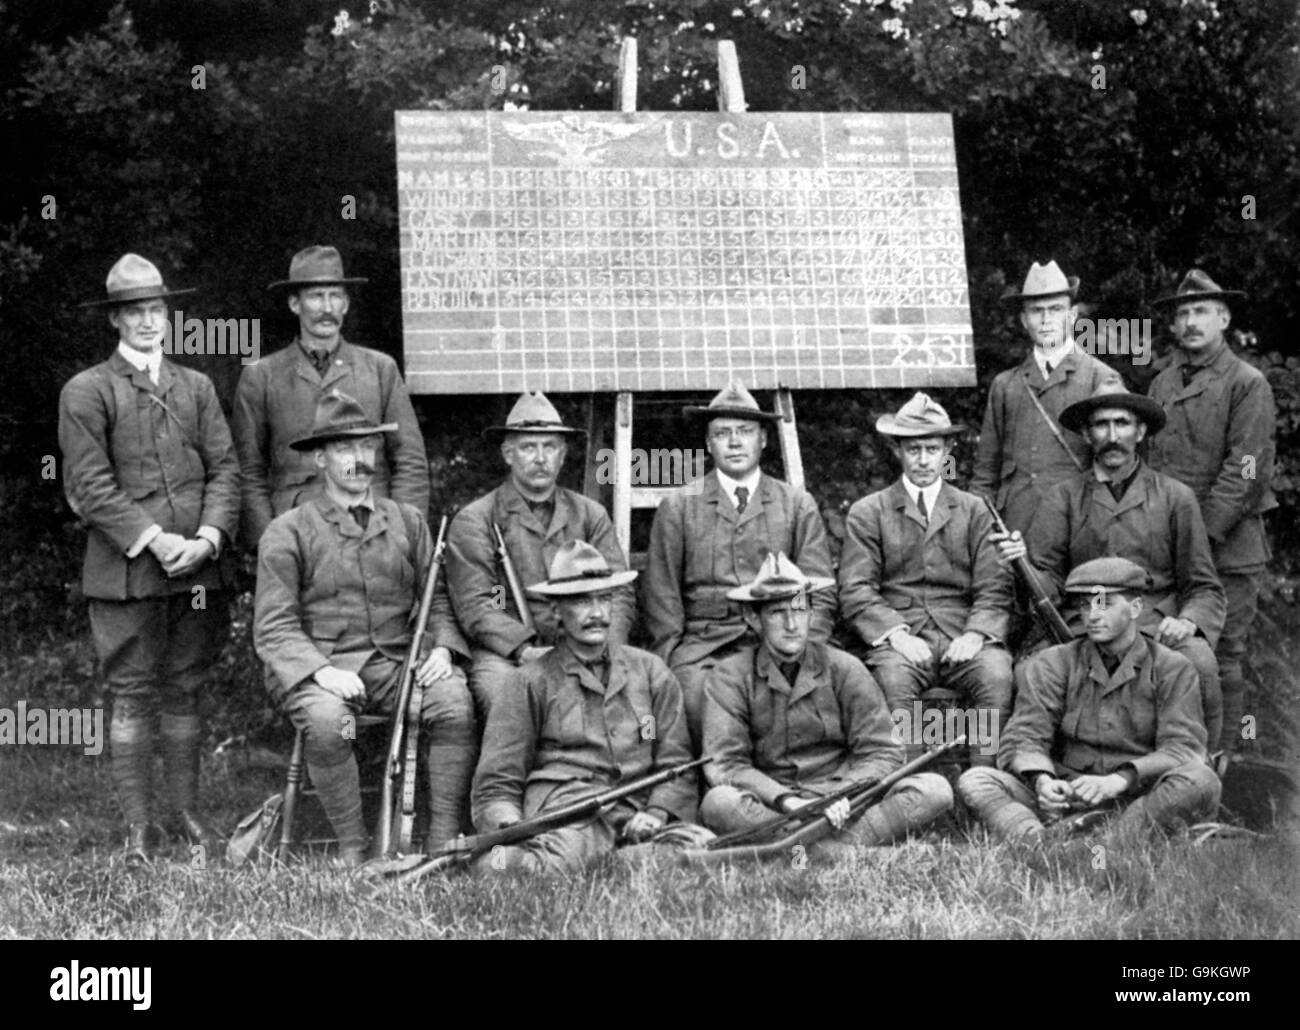 Shooting - London Olympic Games 1908 - Military Rifle - Team Competition - Bisley - Stock Image